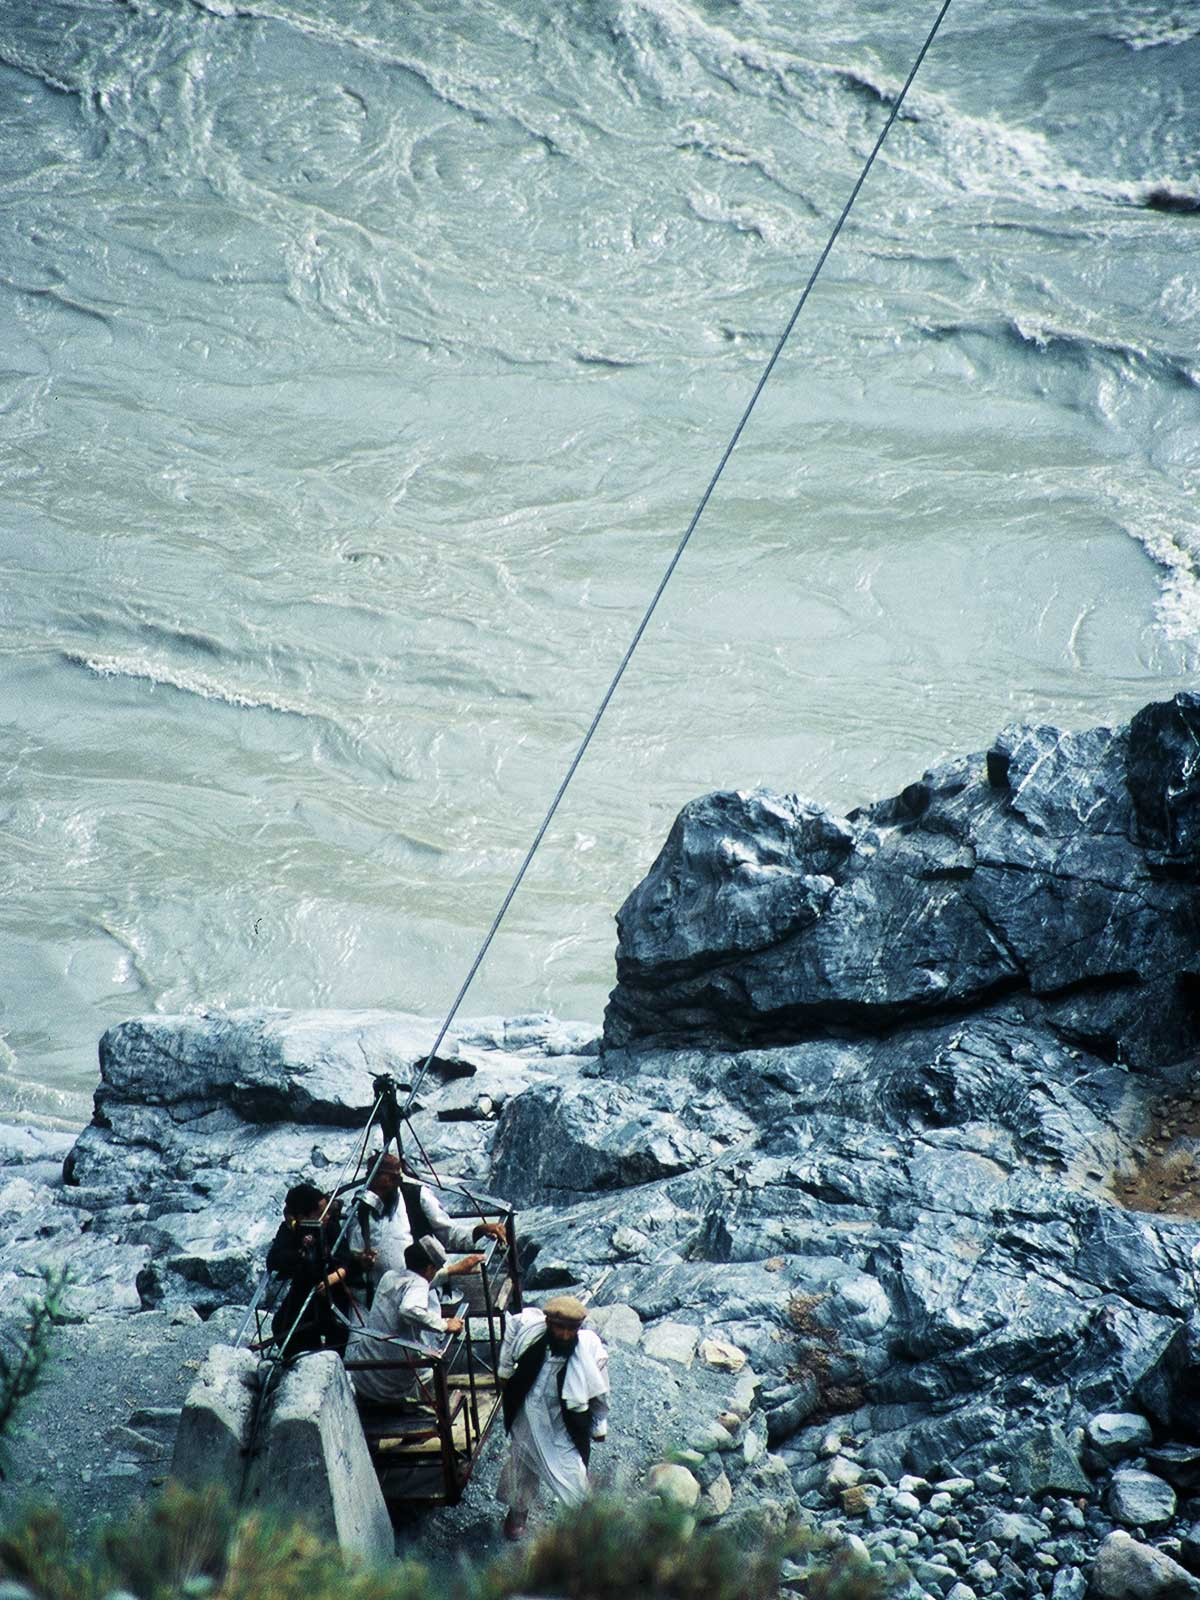 Crossing the Indus by single-cable chairlift | Shatial Pakistan | Study Abroad Photo Journal | Steven Andrew Martin | Learning Adventure